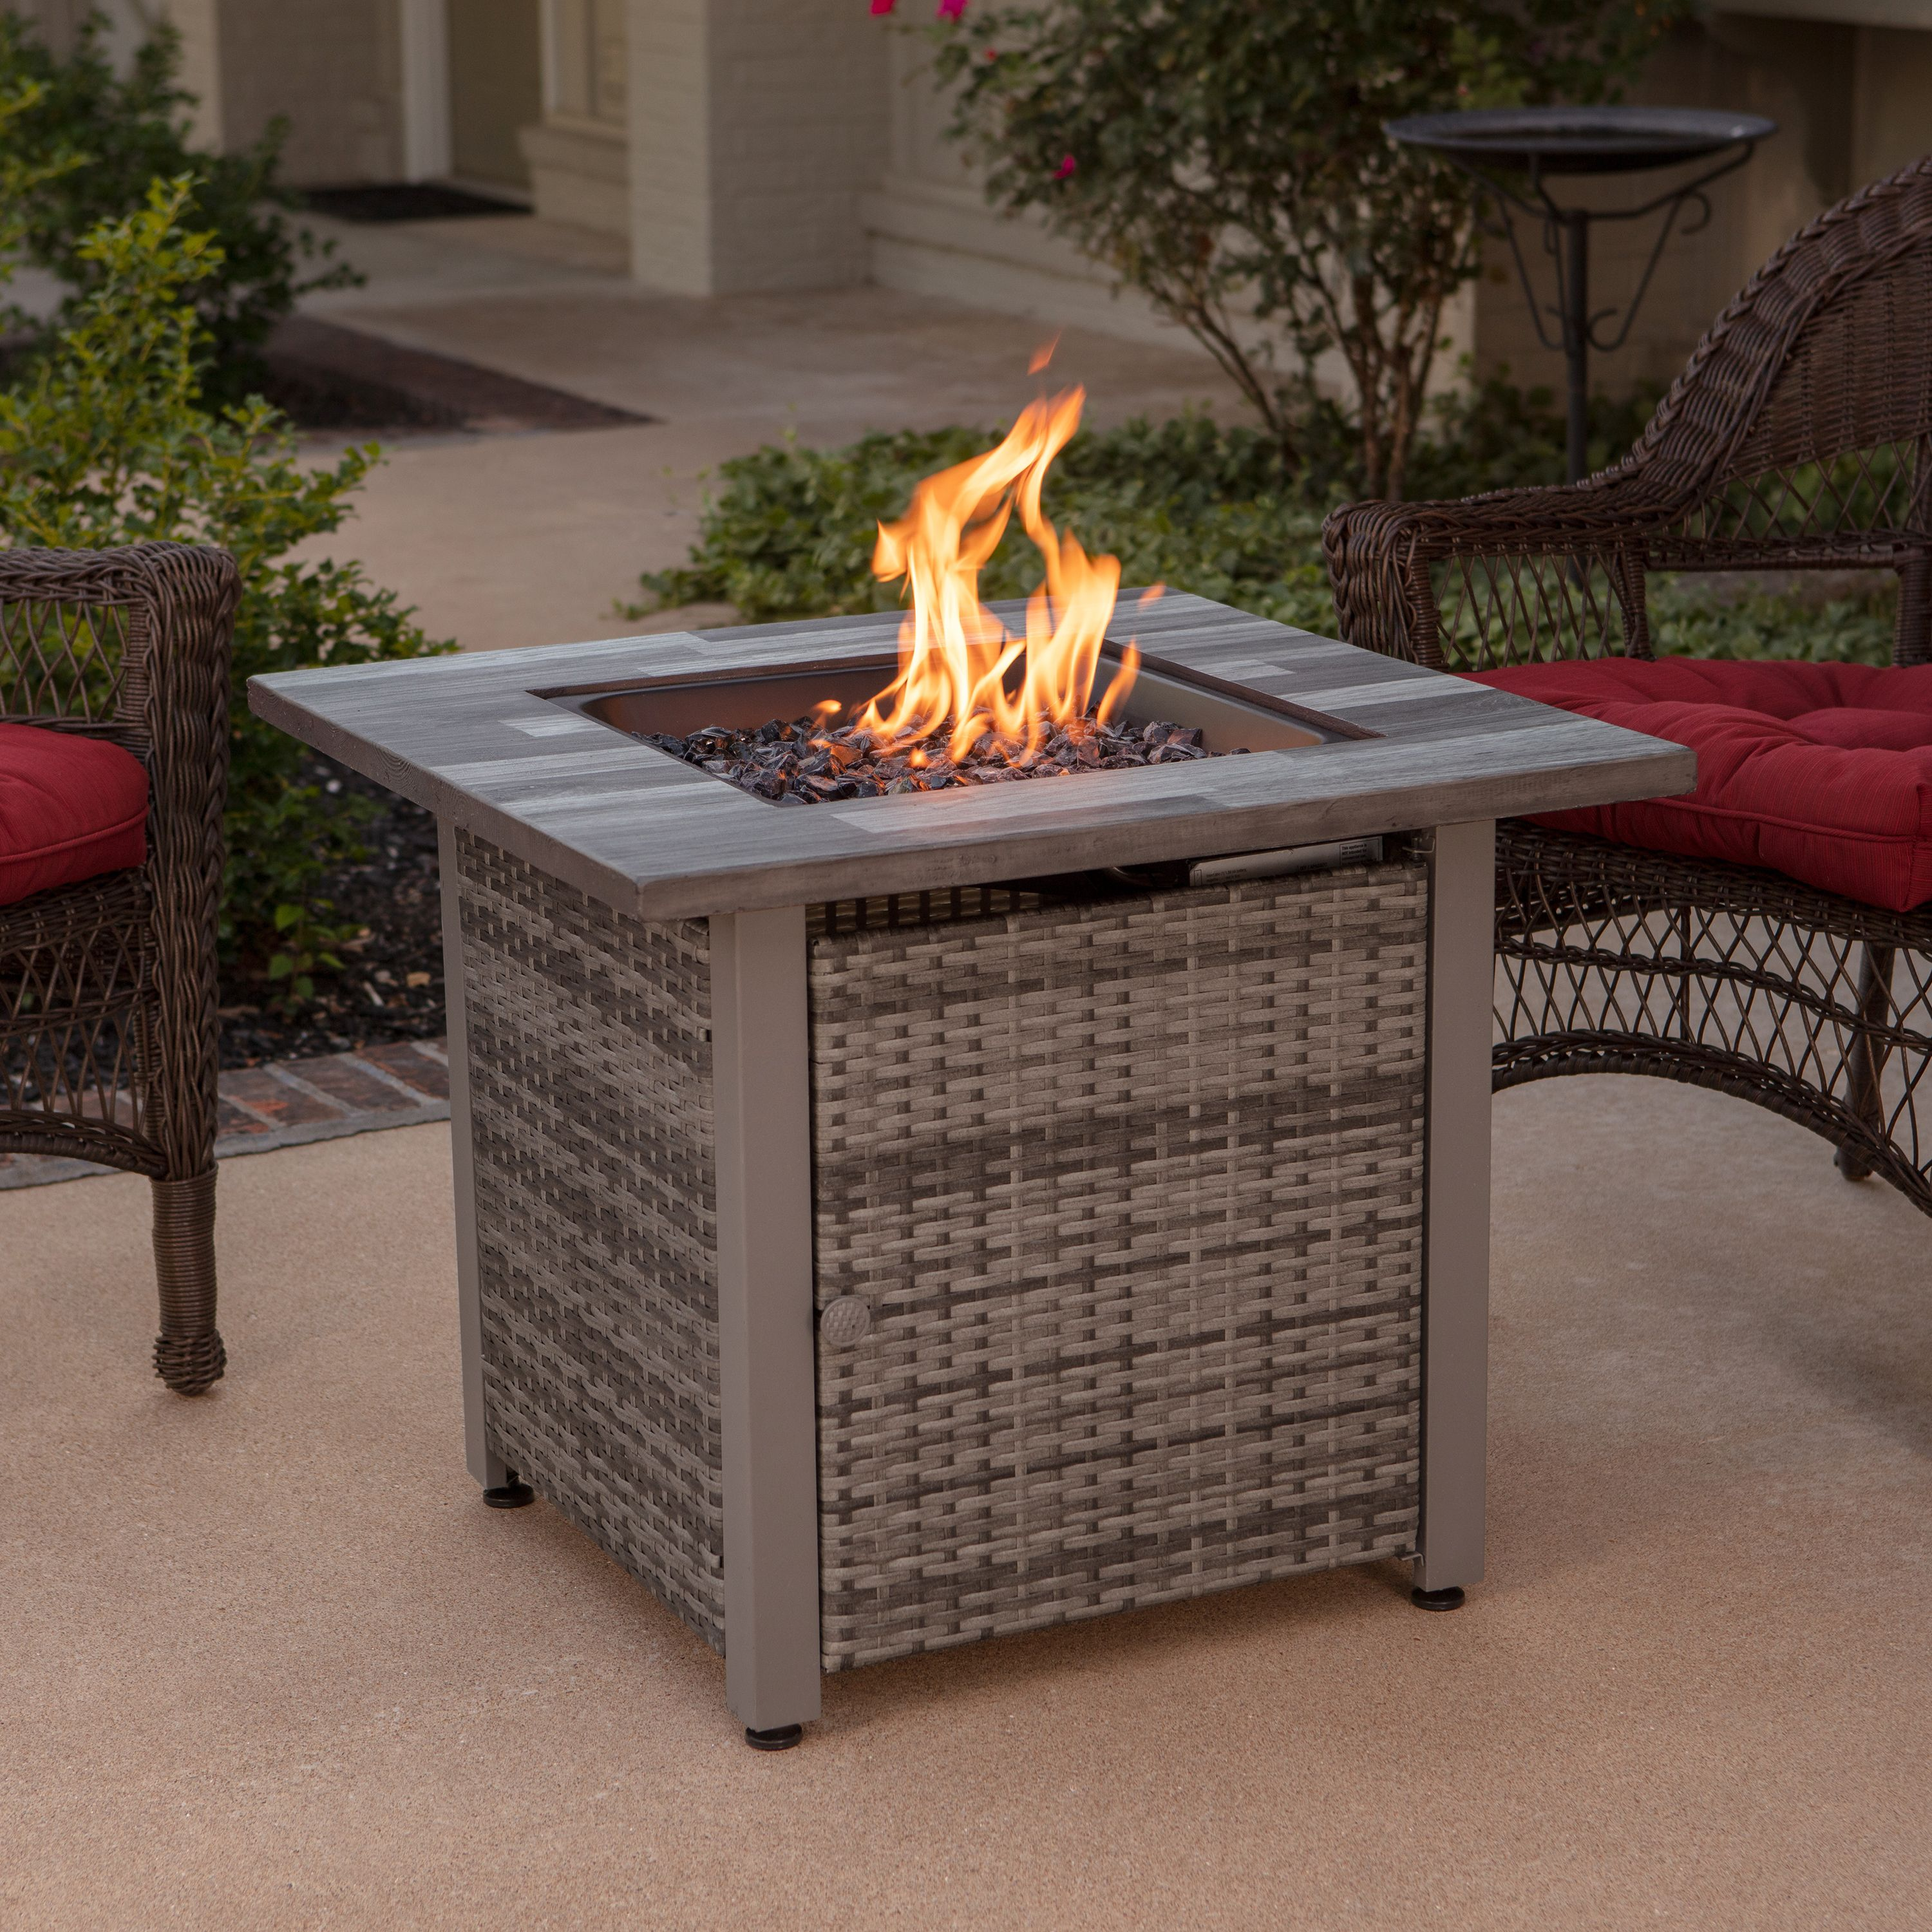 Lp Gas Outdoor Fire Pit